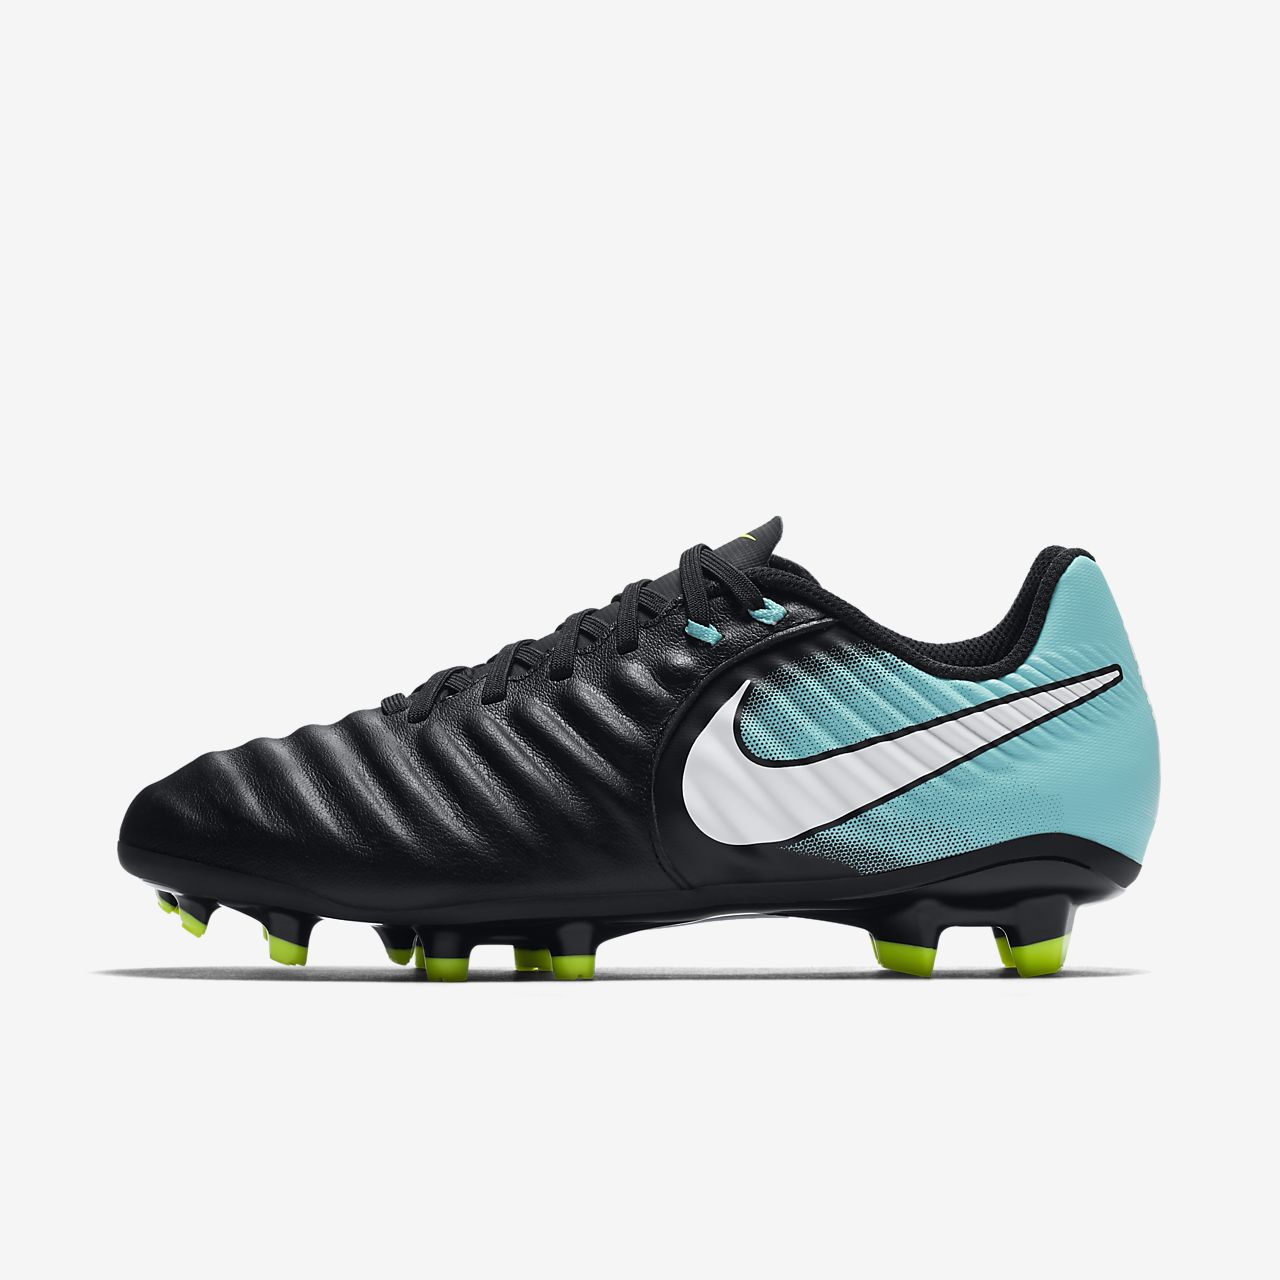 3d337d8df49e womens nike soccer cleats on sale > OFF54% Discounts